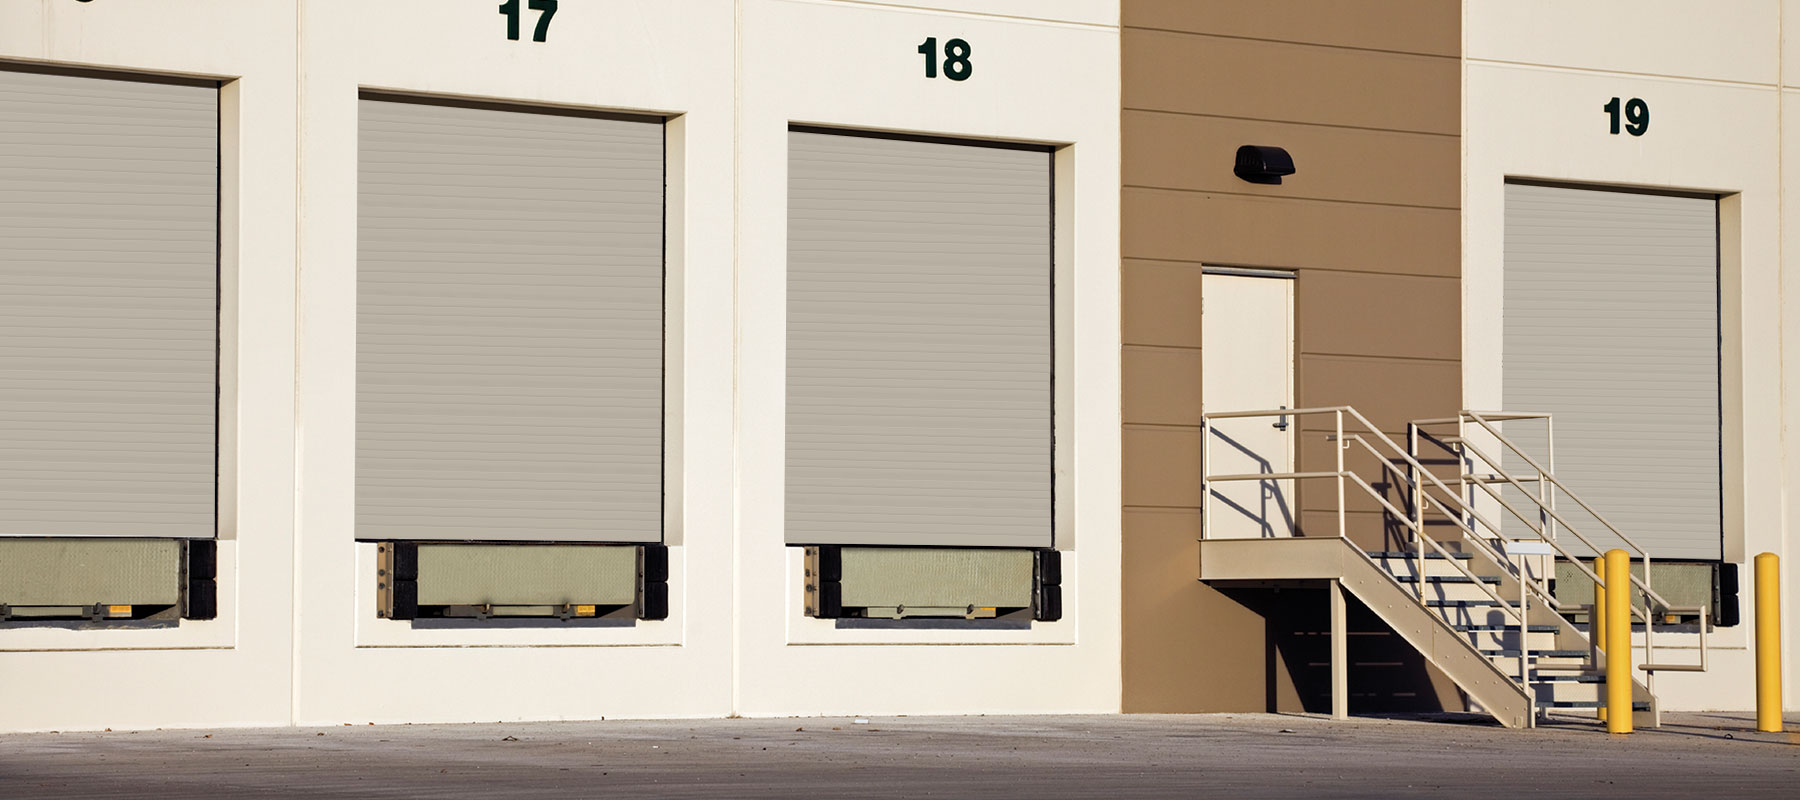 4400/4401 - Premium Commercial/Industrial Steel Garage Doors